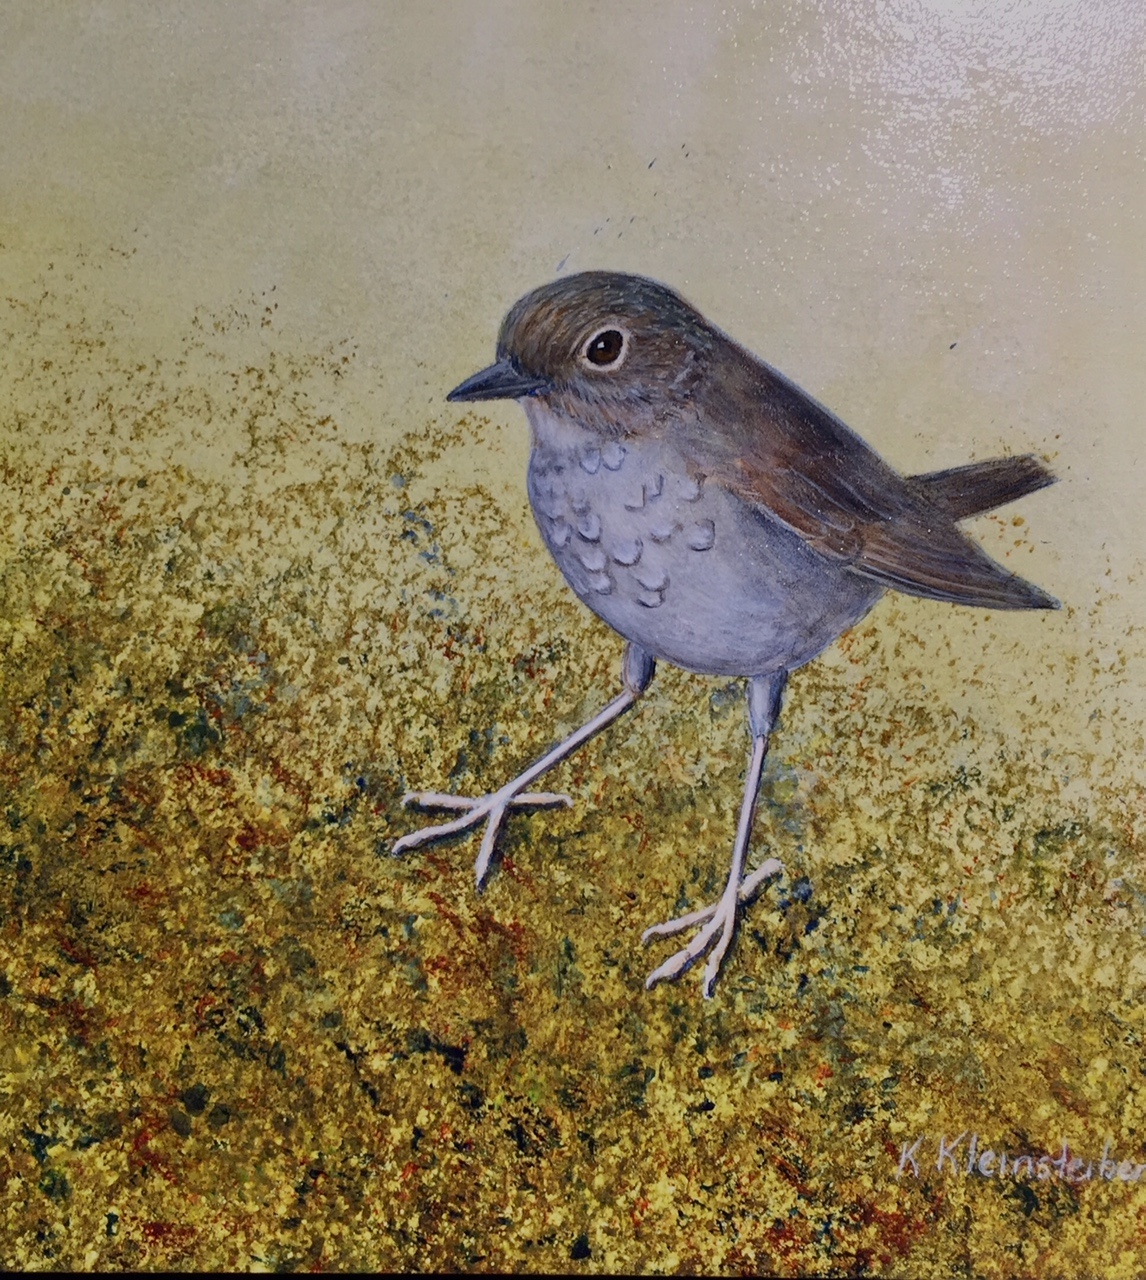 Puaiohi, or the Small Kauai Thrush, is endemic to the island of Kauaʻi. It has the unfortuate distinction of being on the IUCN's Red List. This piece for the Silent Skies project was done by Kathy Kleinsteiber,